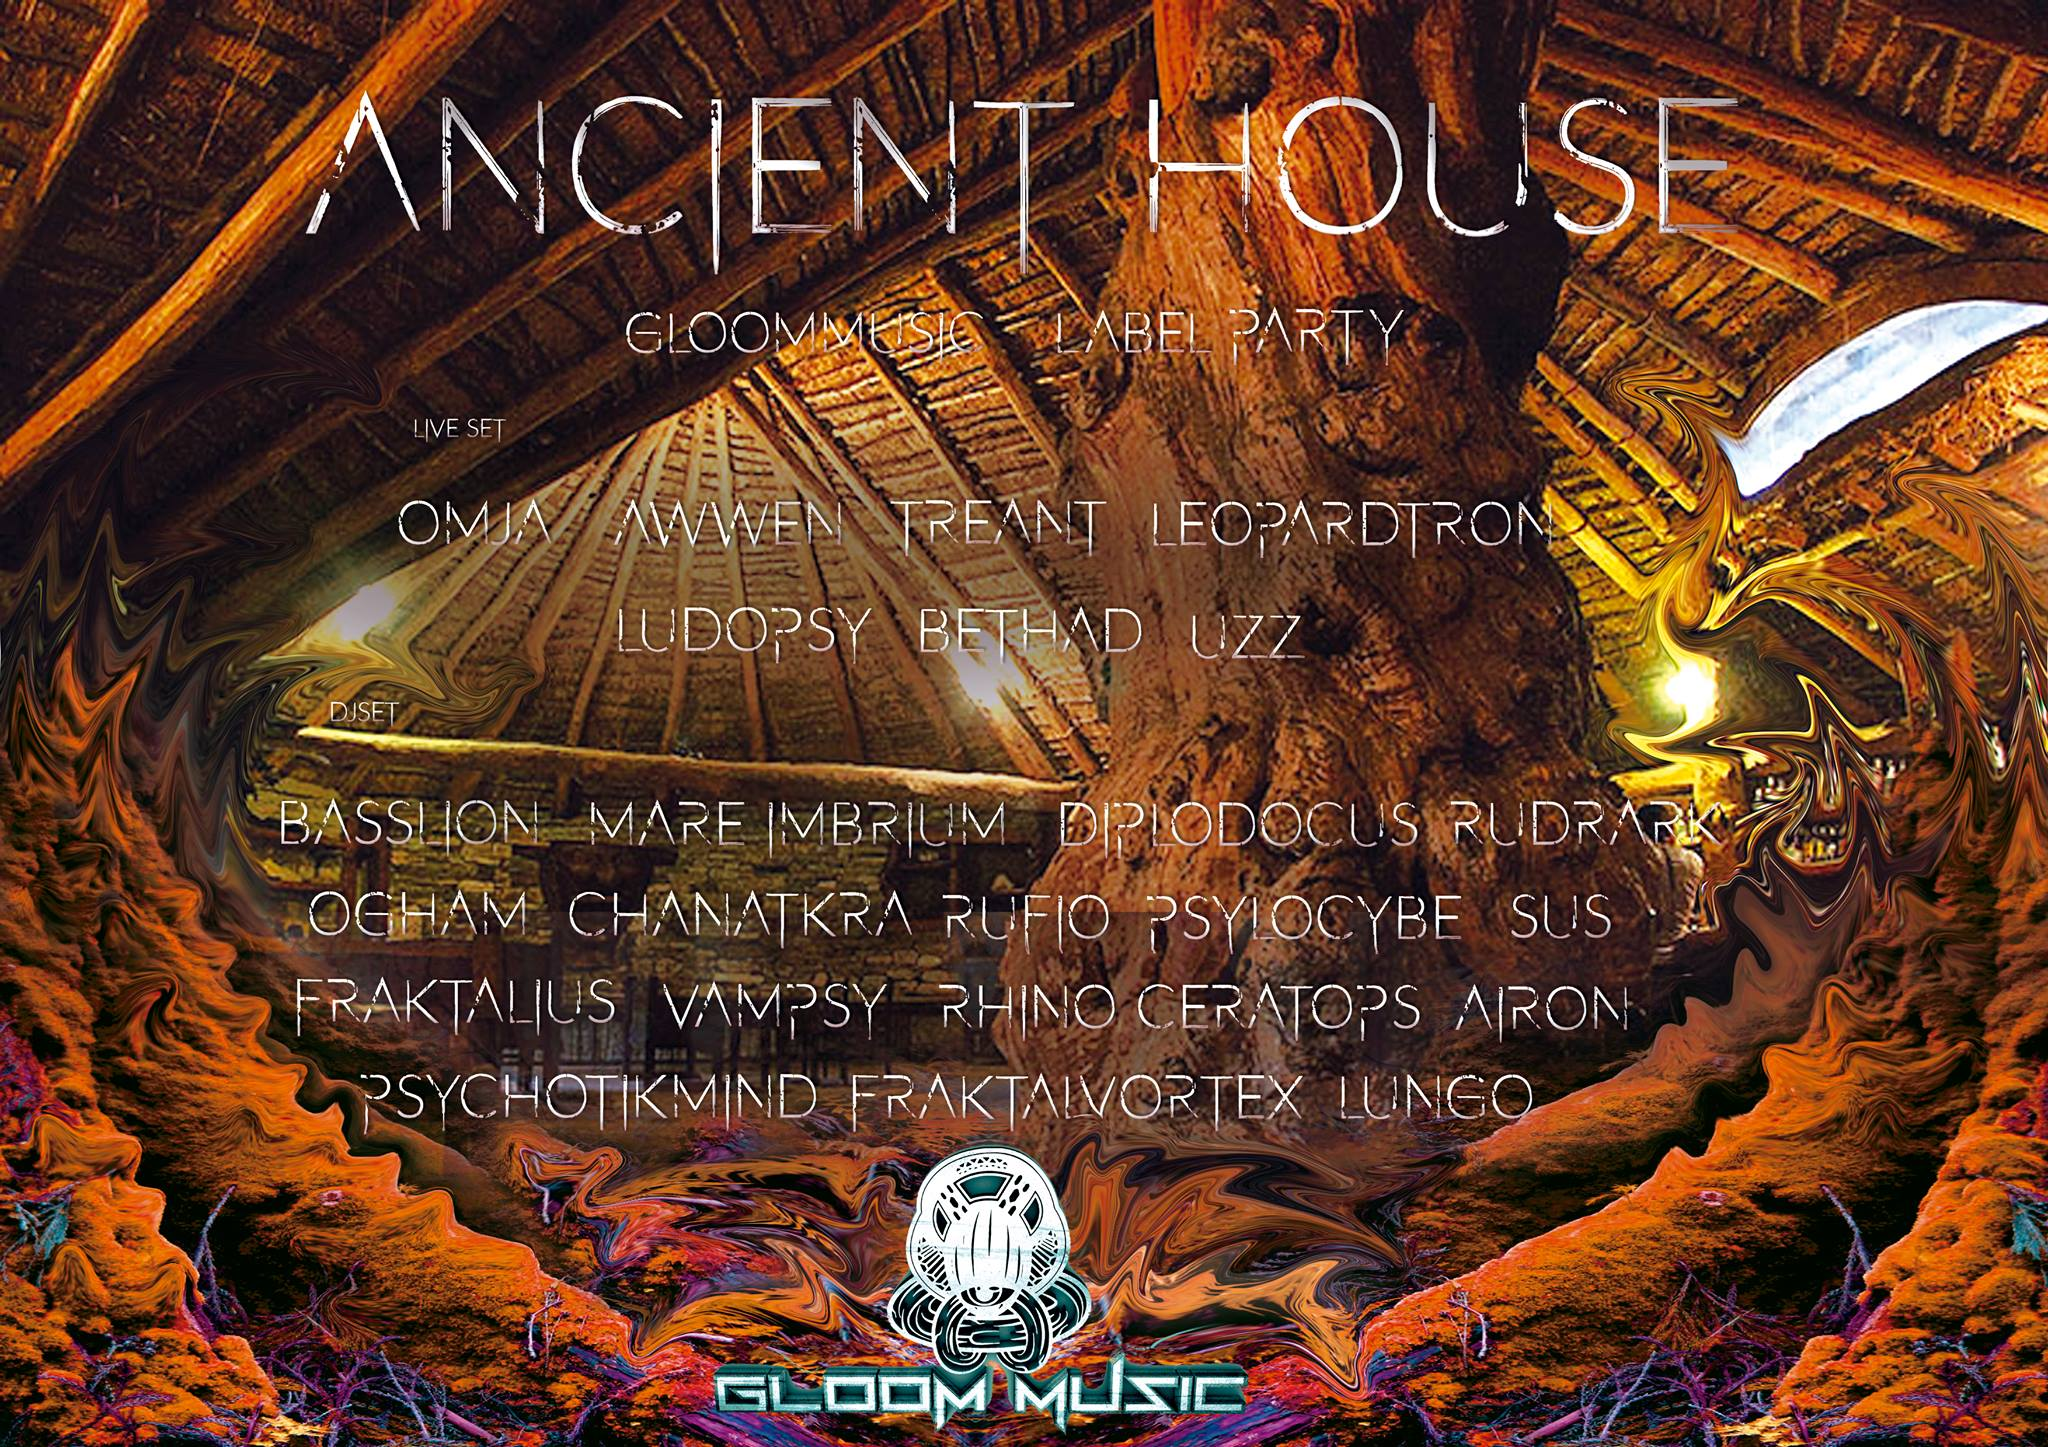 GloOm Music Label Party; The Ancient House III 2